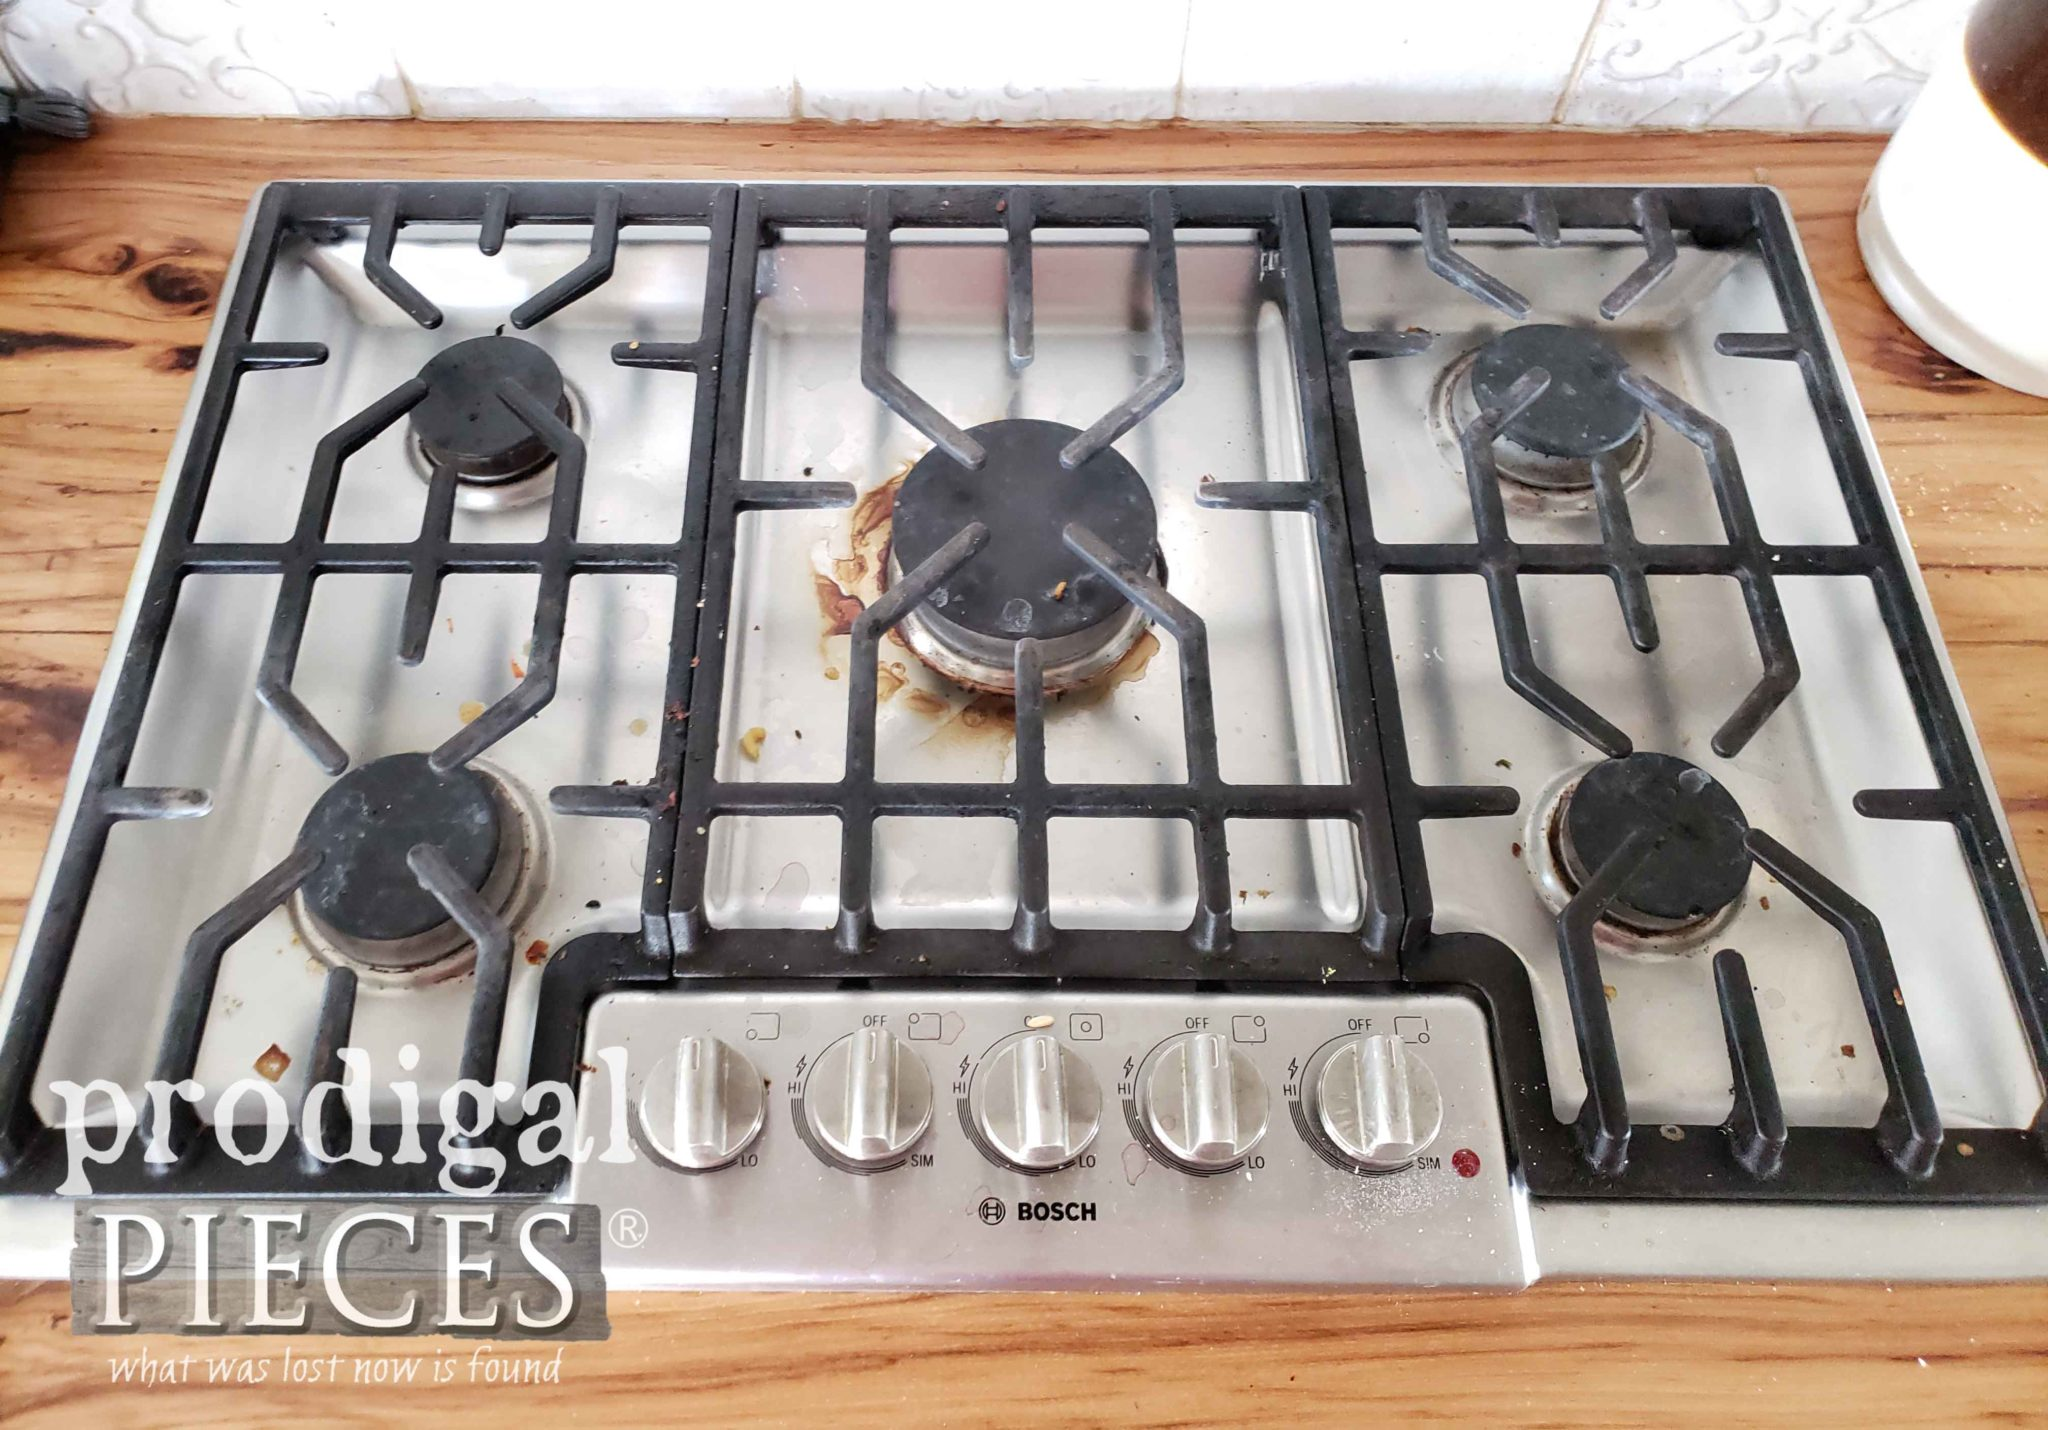 Dirty Cooktop Before Steam Cleaning | prodigalpieces.com